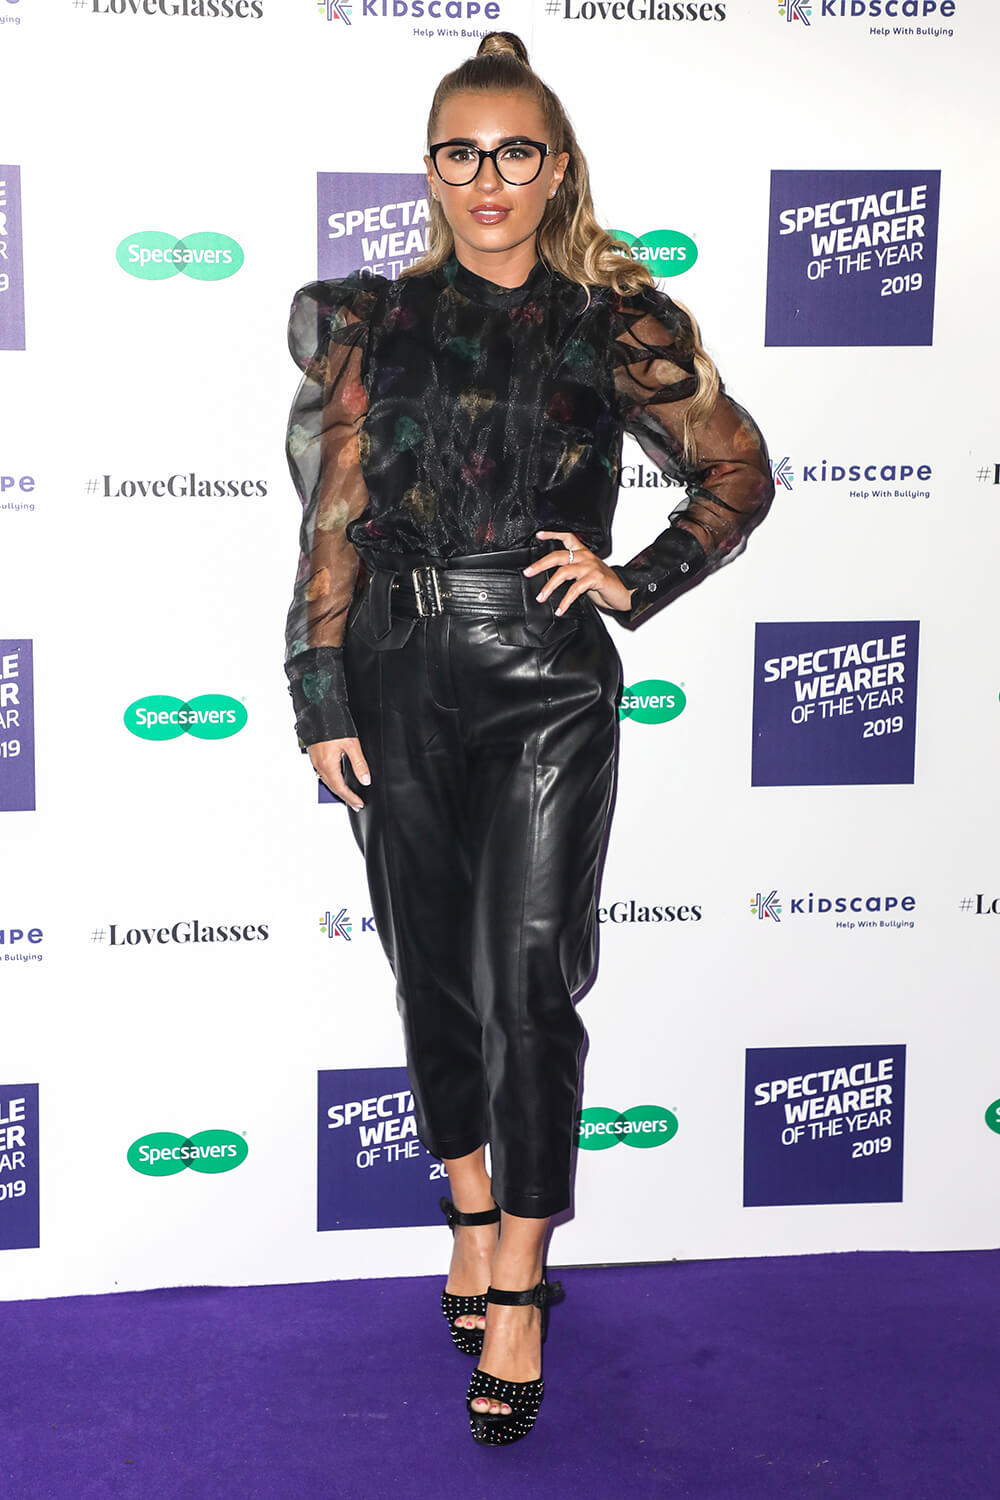 Dani Dyer attends Specsavers' Spectacle Wearer of the Year Awards